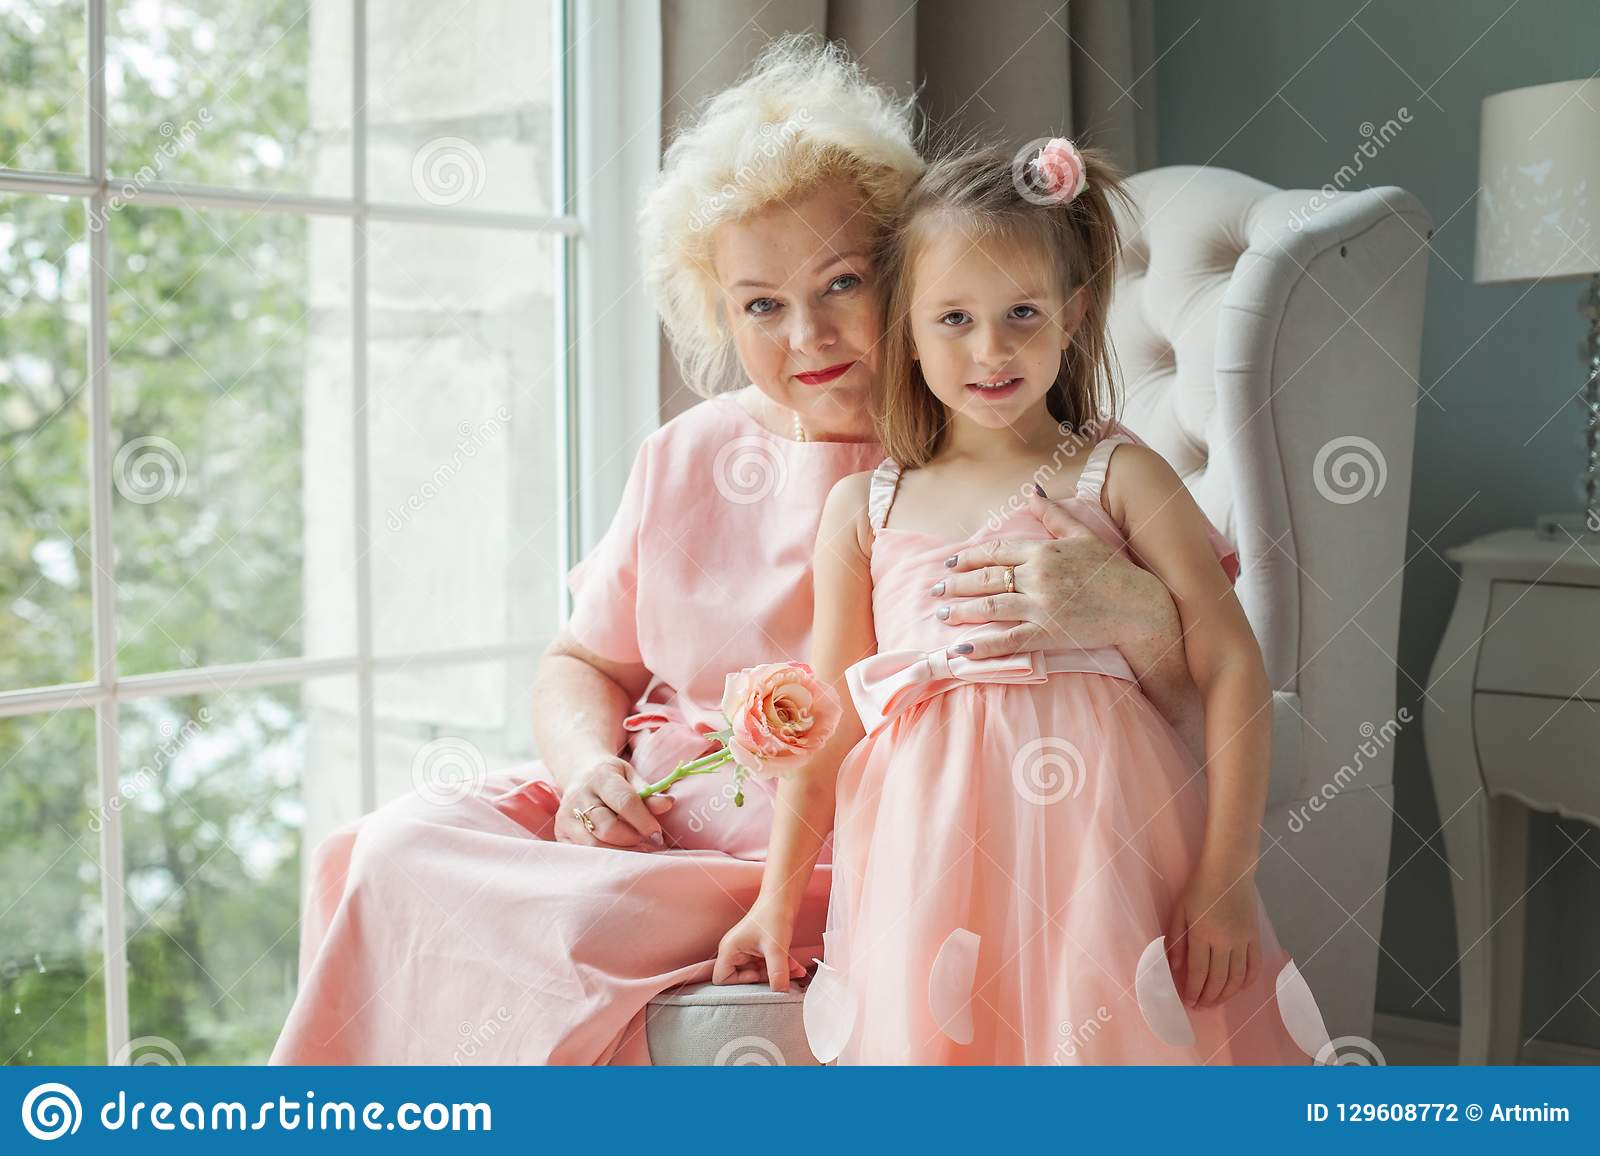 Older woman and girl